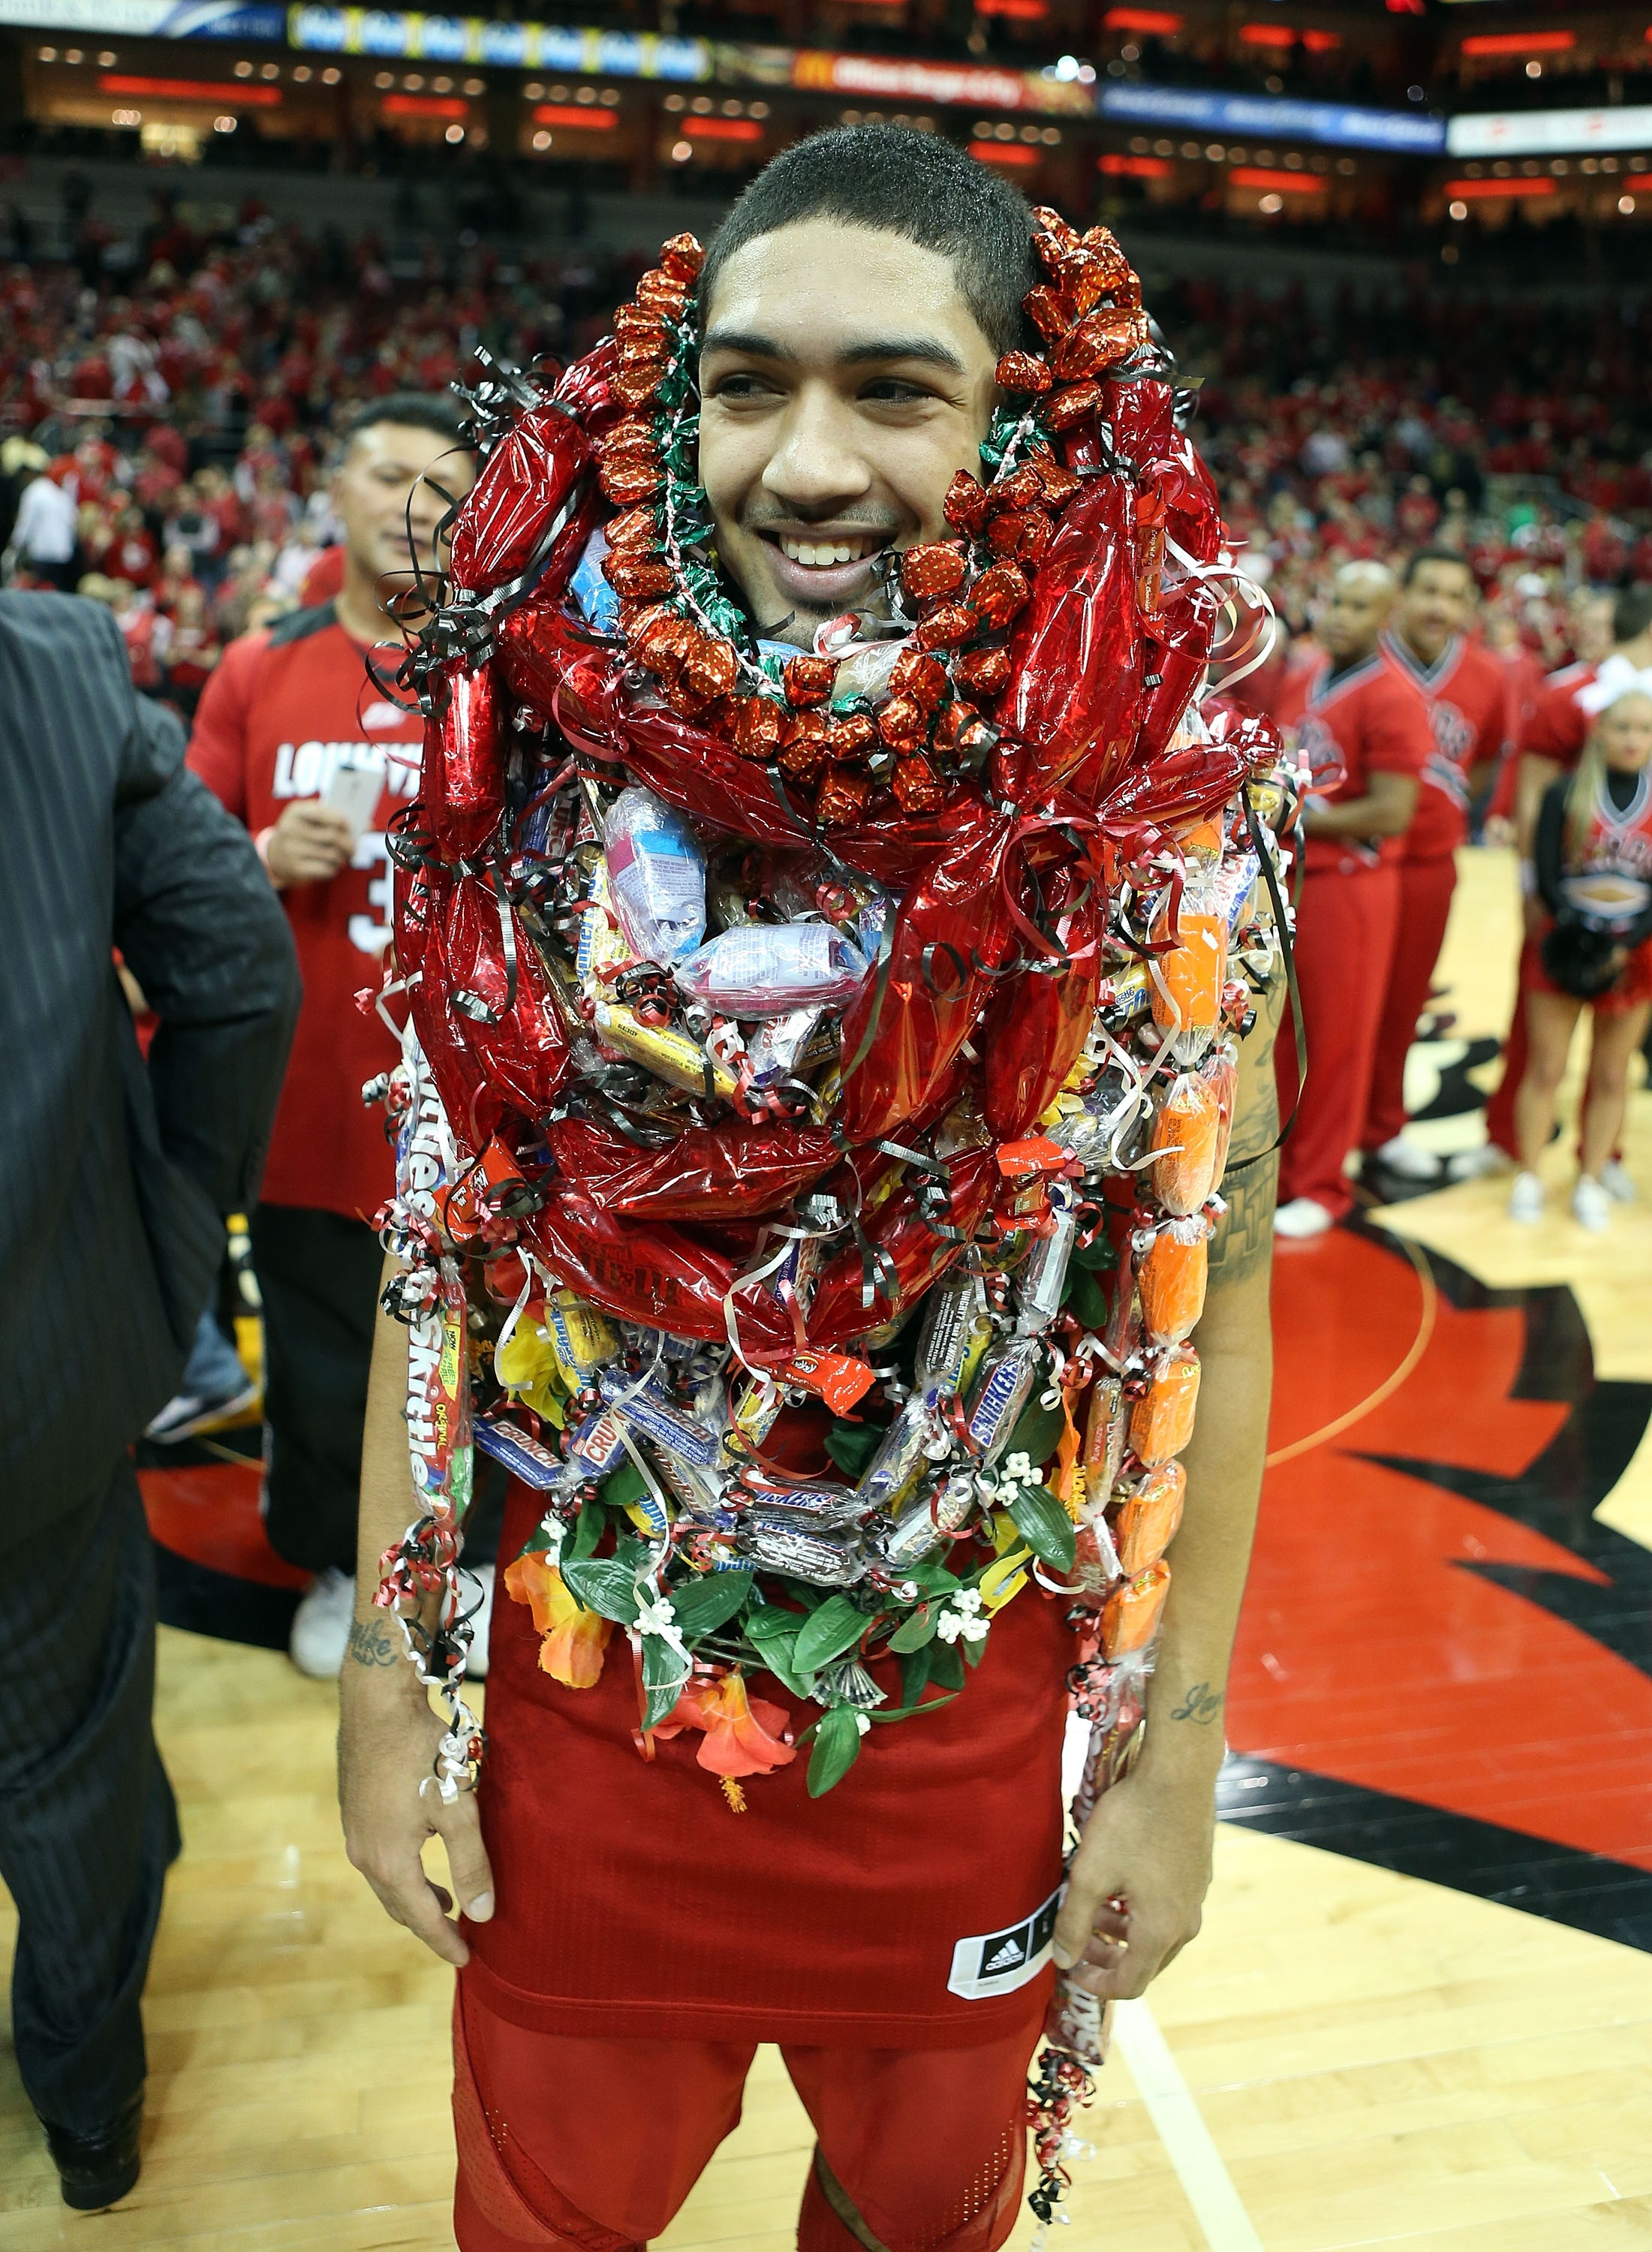 Louisville's Peyton Siva is overwhelmed with leis after the Cardinals' win. (Getty)